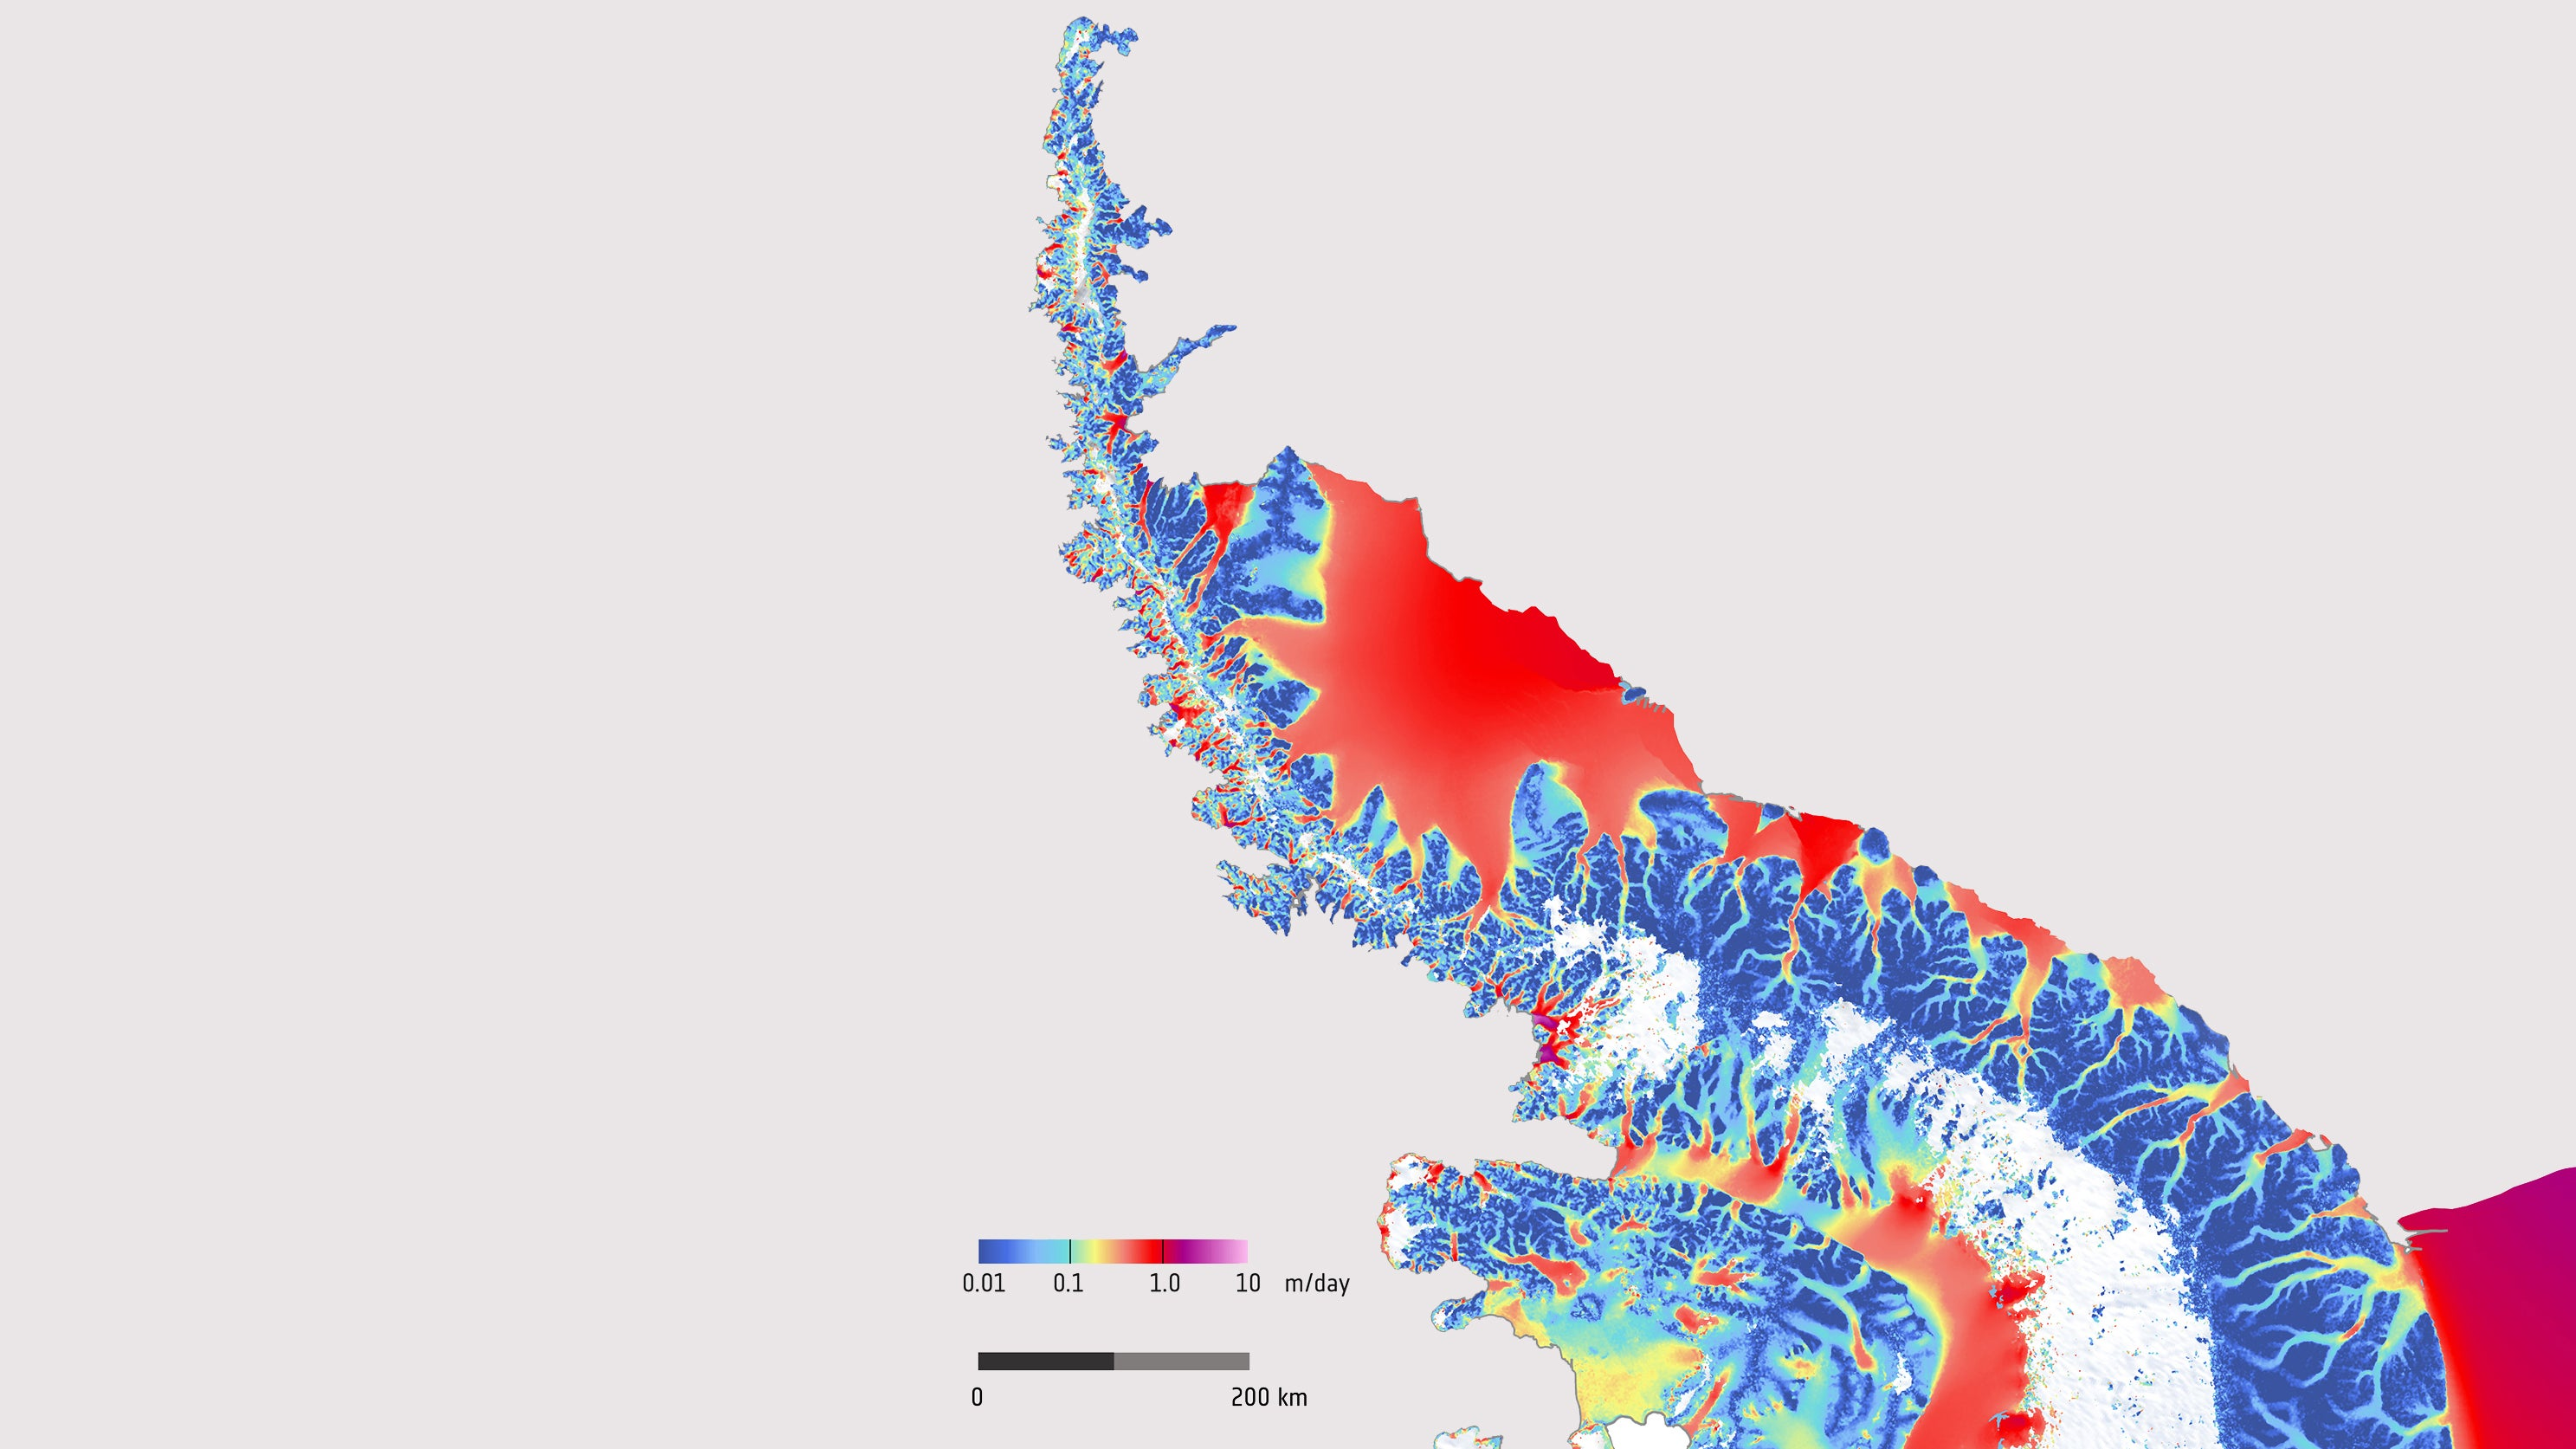 This Trippy Image Shows How FastAntarctic Ice Flows